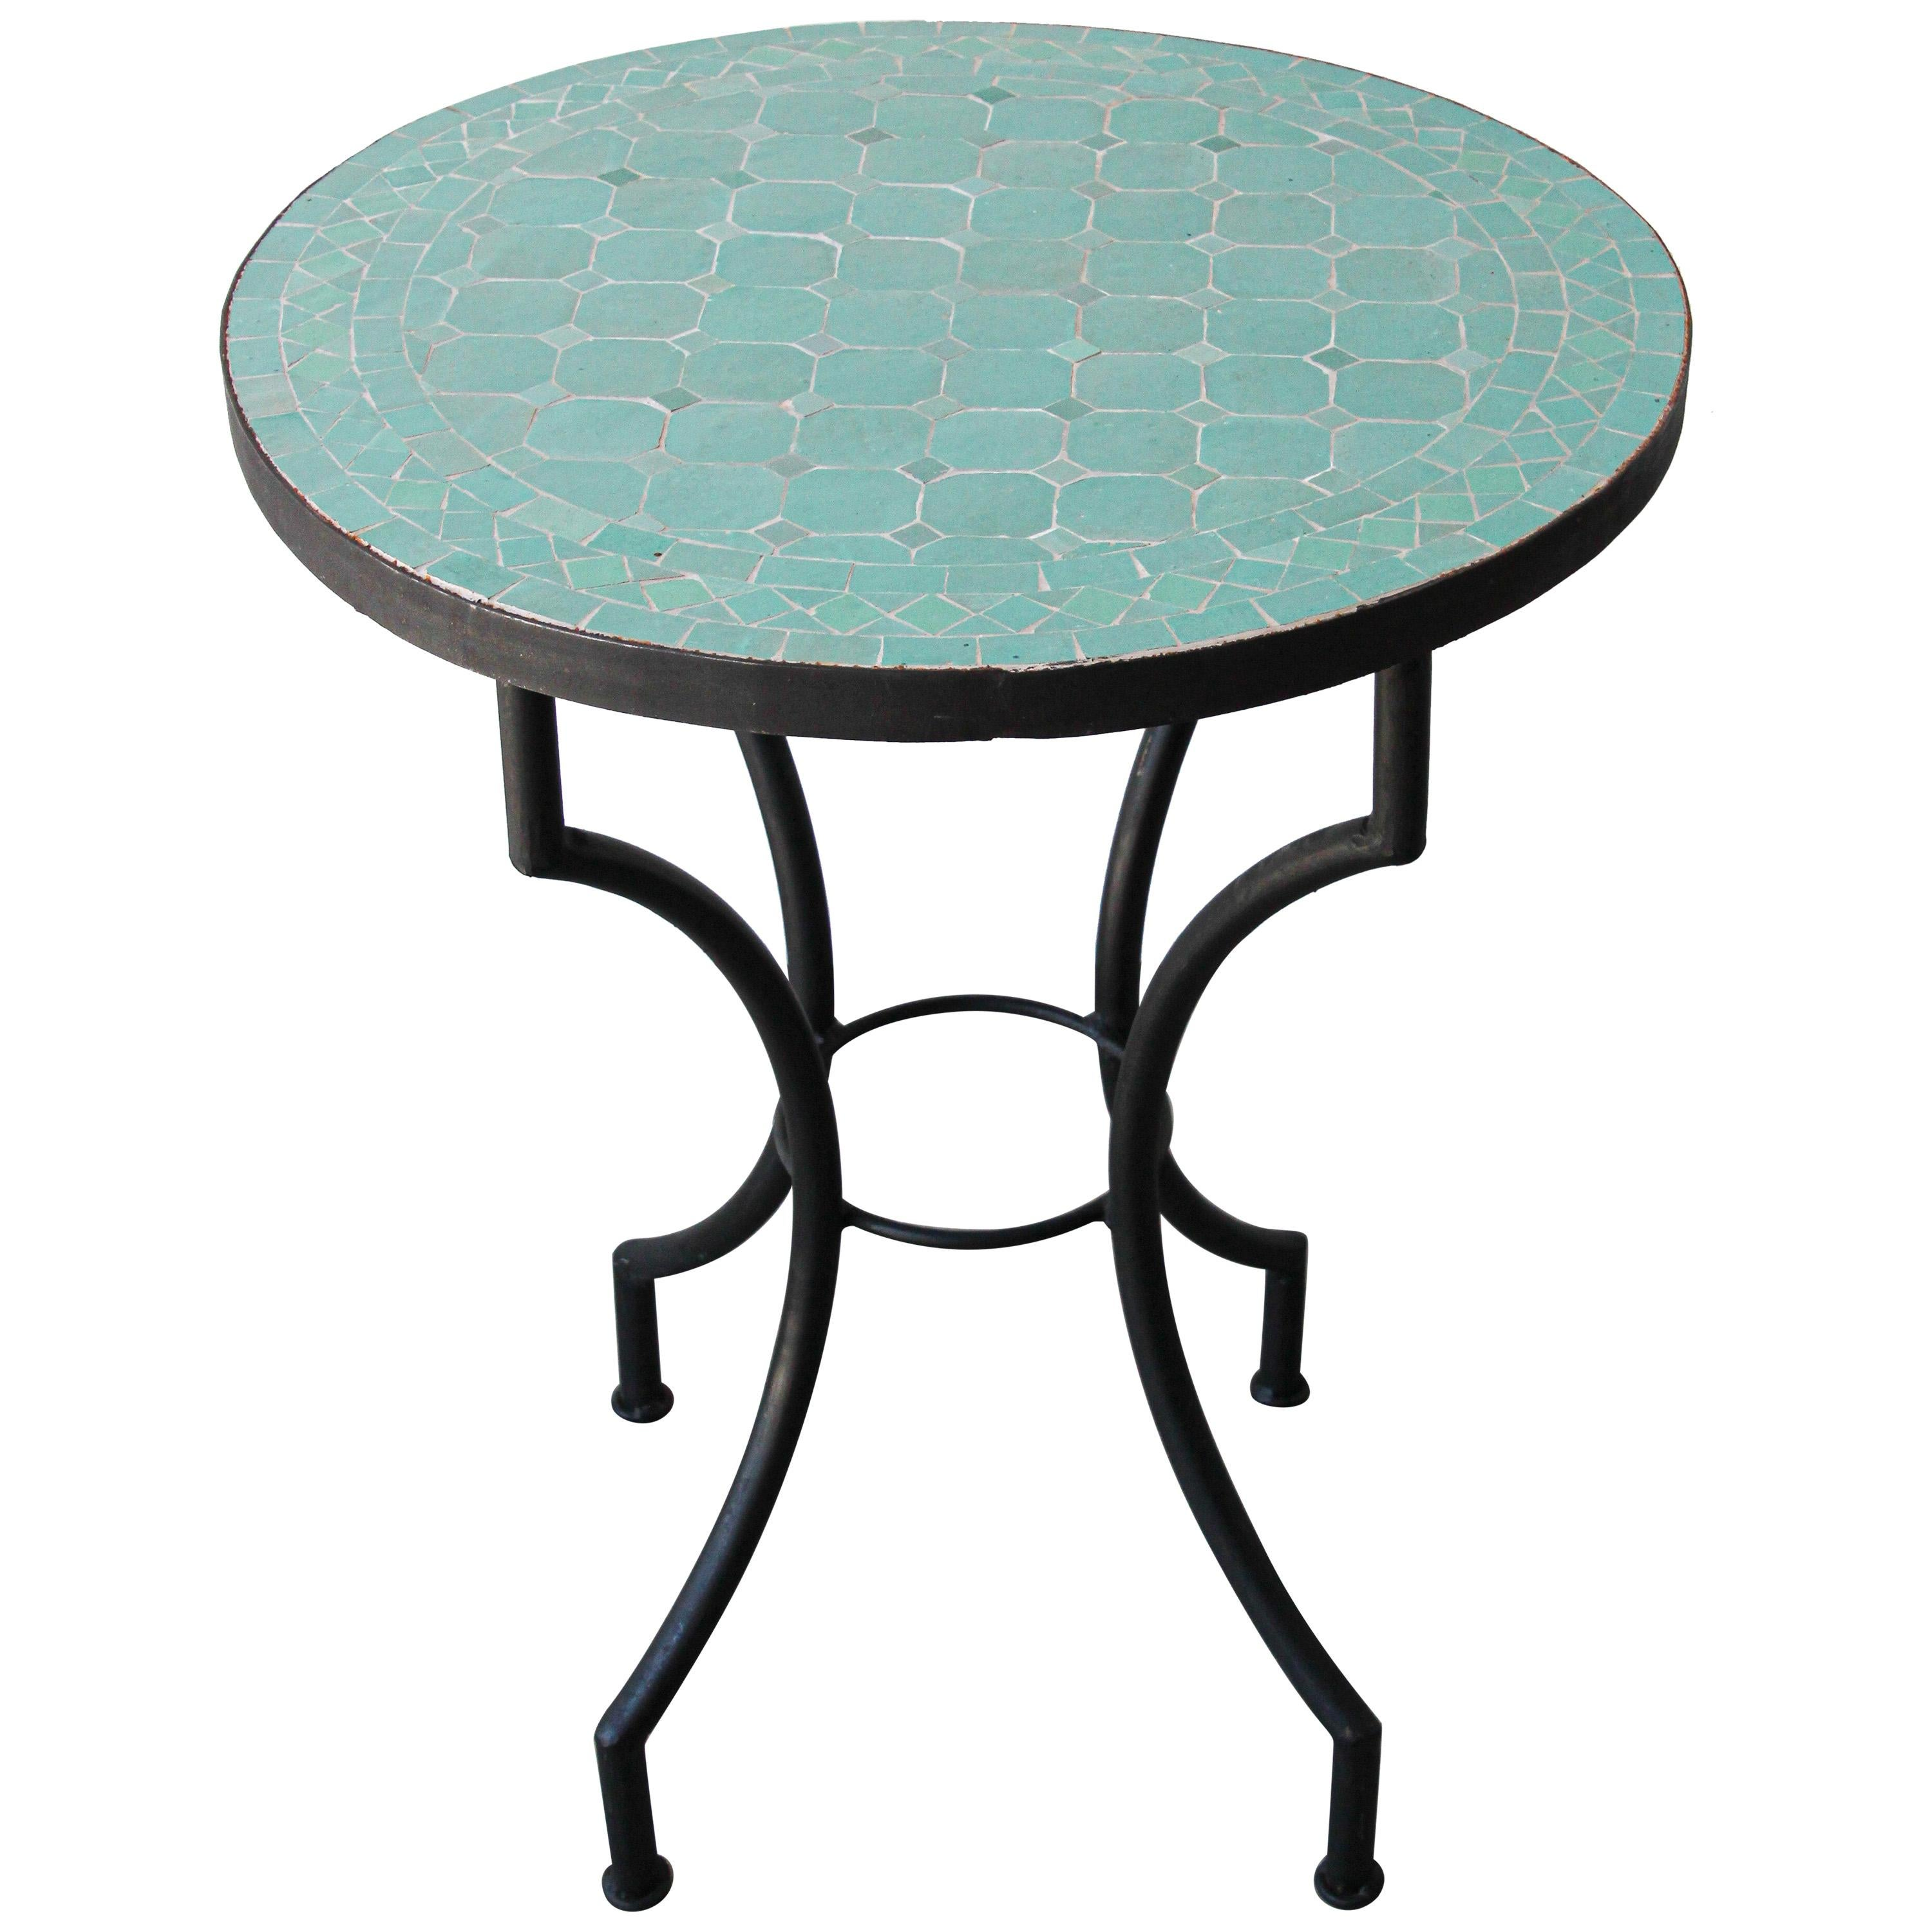 Moroccan Mosaic Teal Color Bistro Tiles Table